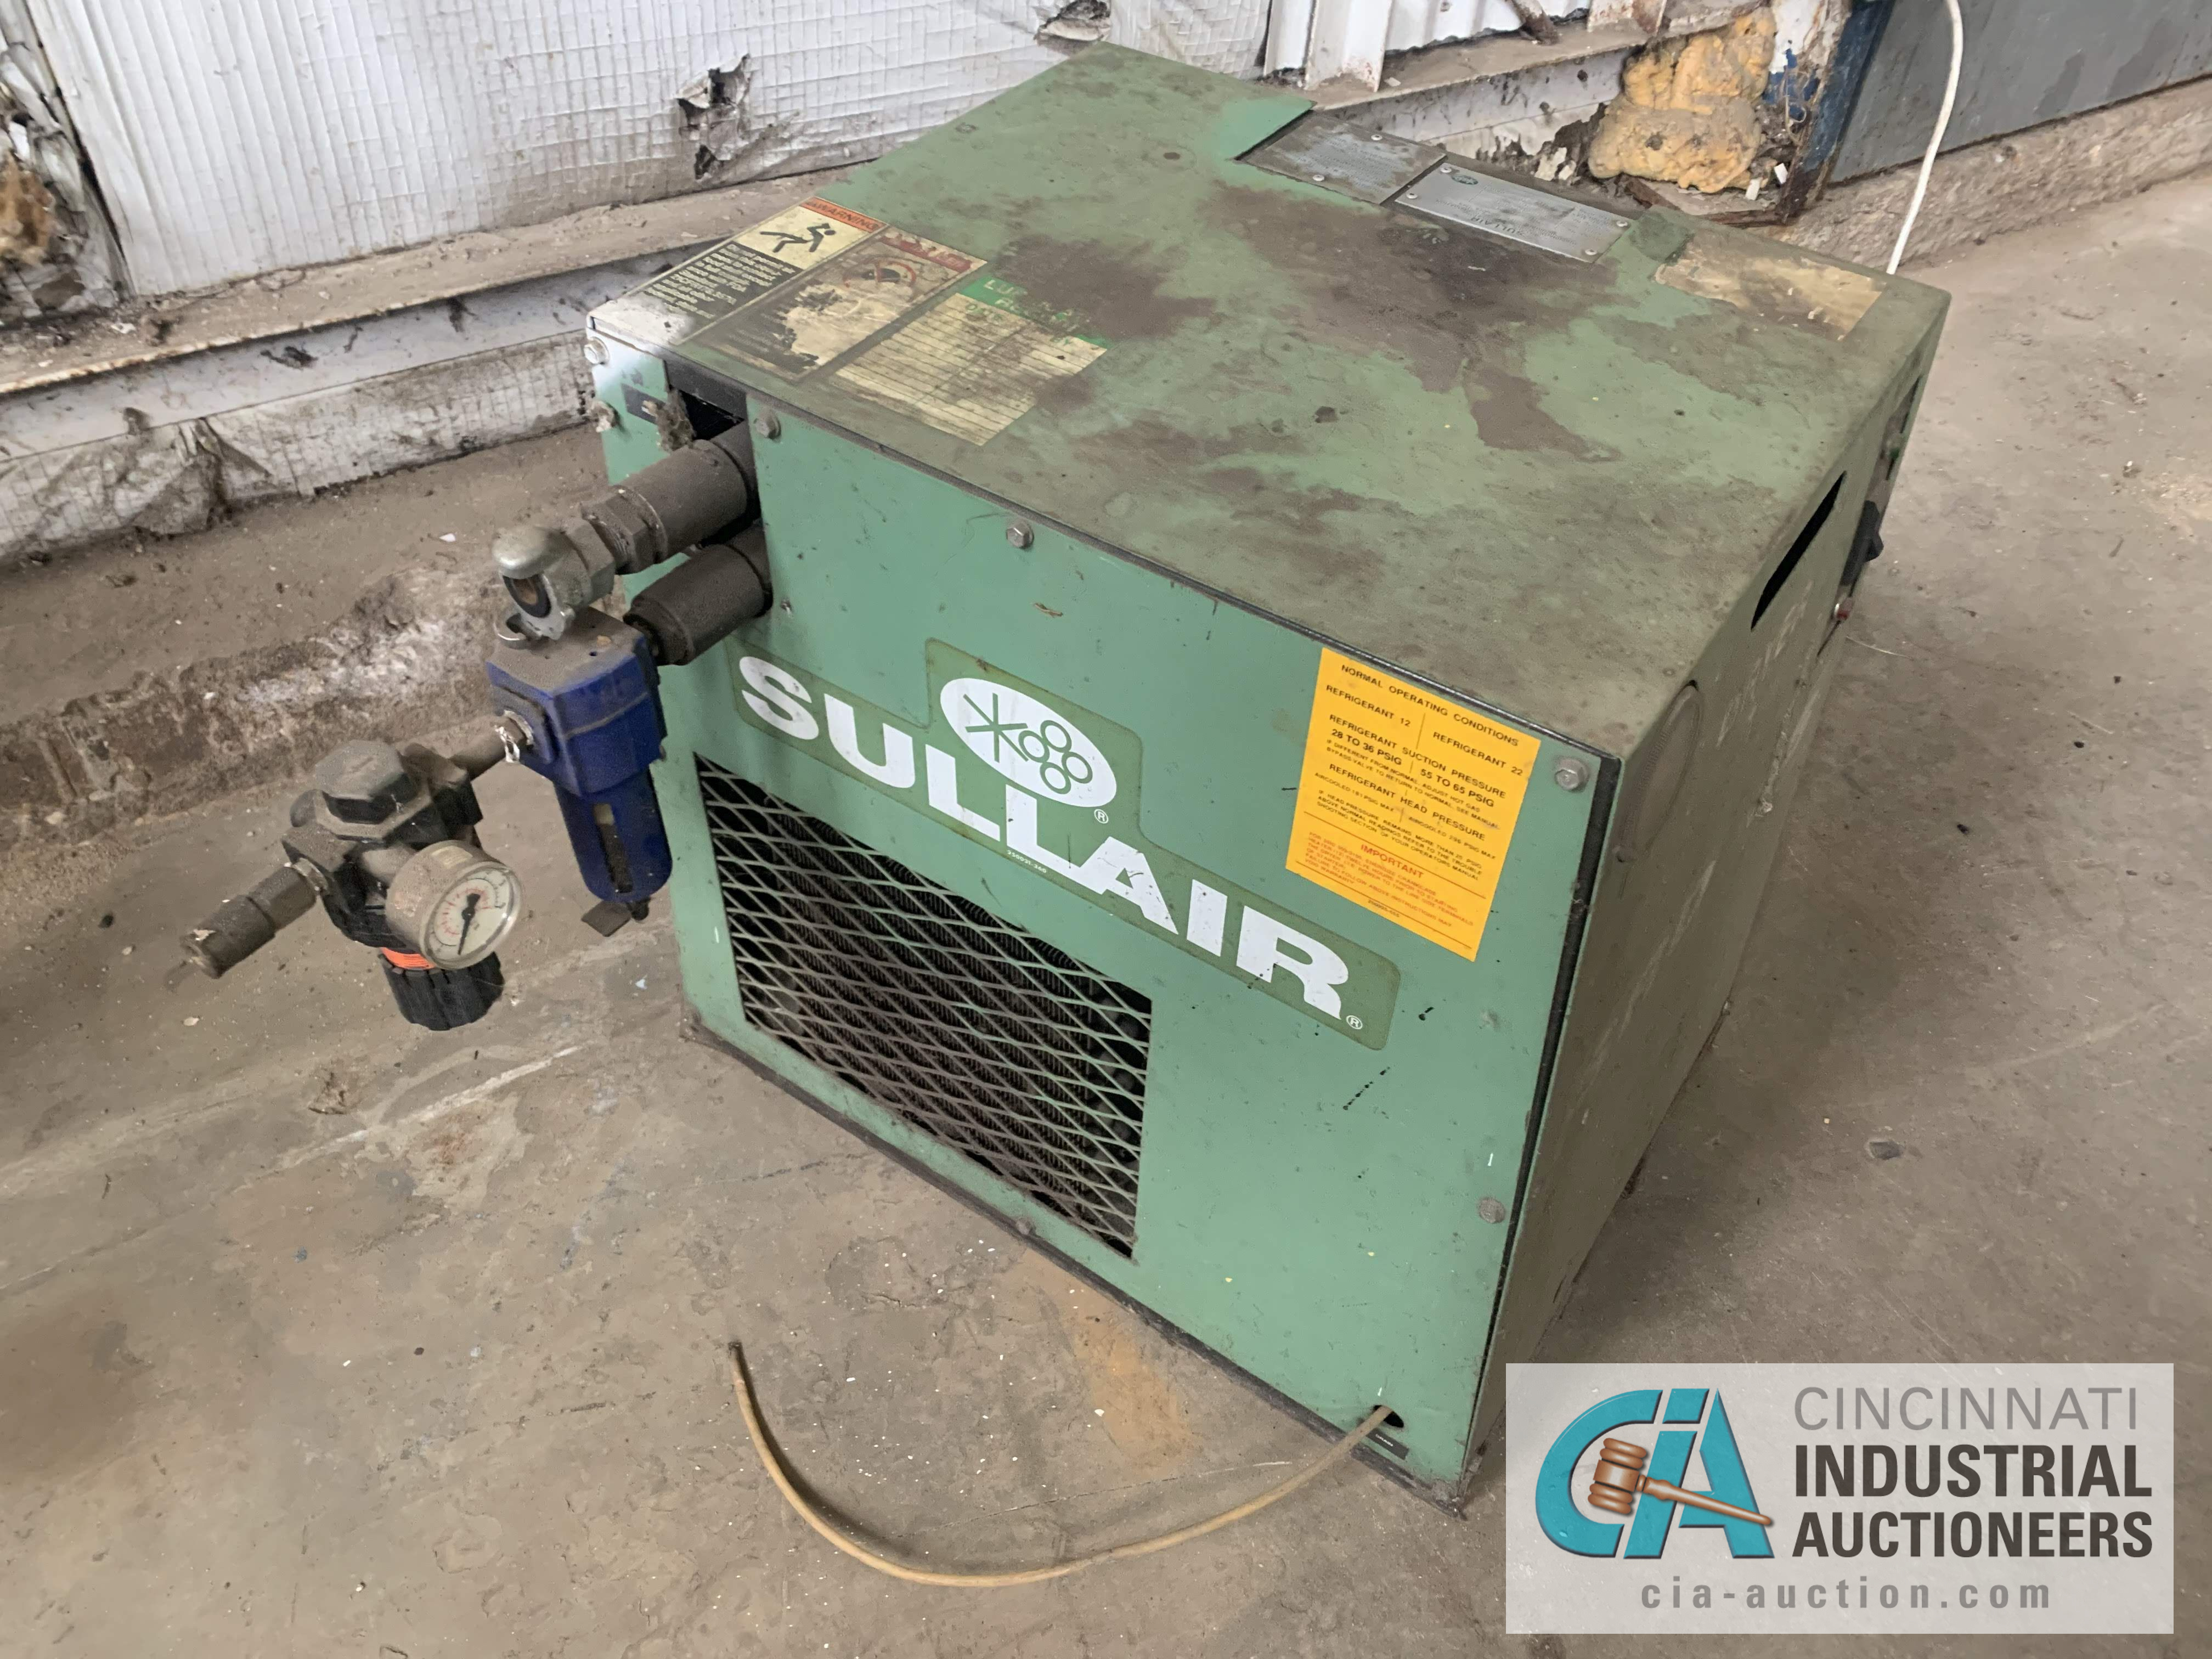 150 PSI SULLAIR MODEL SRD-35 A/C AIR DRYER - $20.00 Rigging Fee Due to Onsite Rigger - Located in